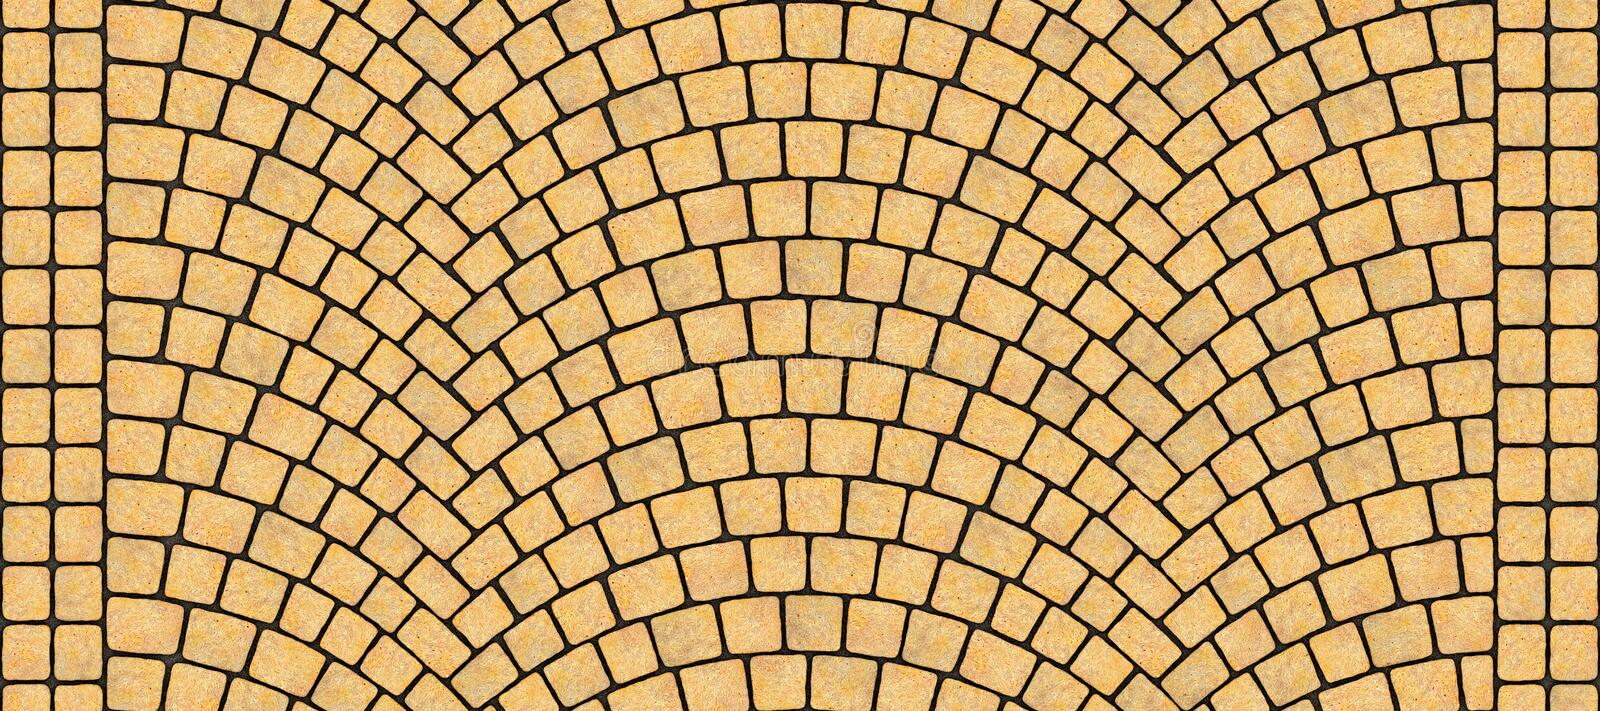 Road curved cobblestone texture 128. Cobblestone arched pavement road with edge courses at the sidewalk. Seamless tileable repeating 3D rendering texture stock illustration